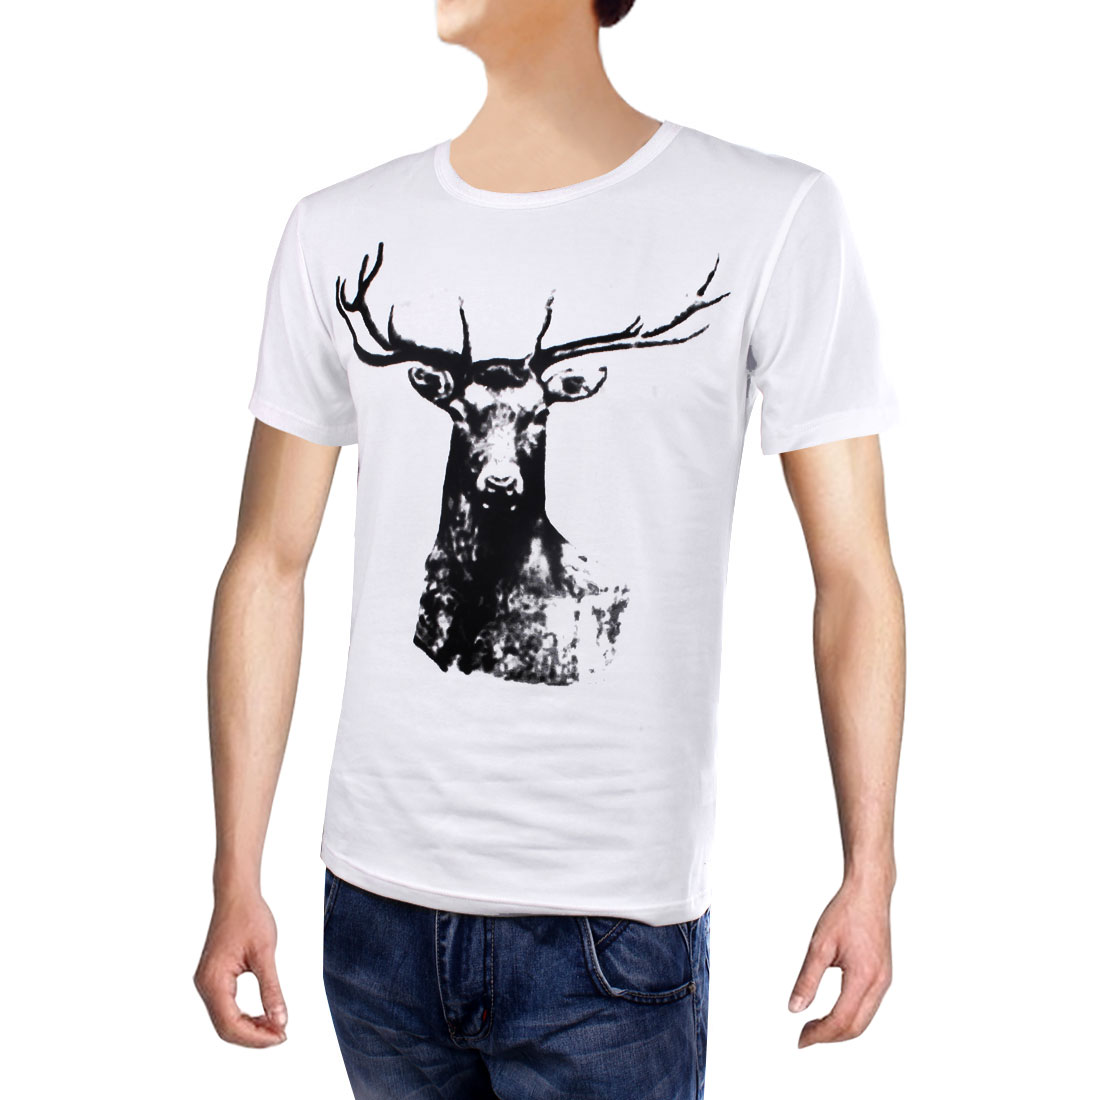 Mens New Fashion Round Neck Short Sleeve Printed Spring White T-shirt M